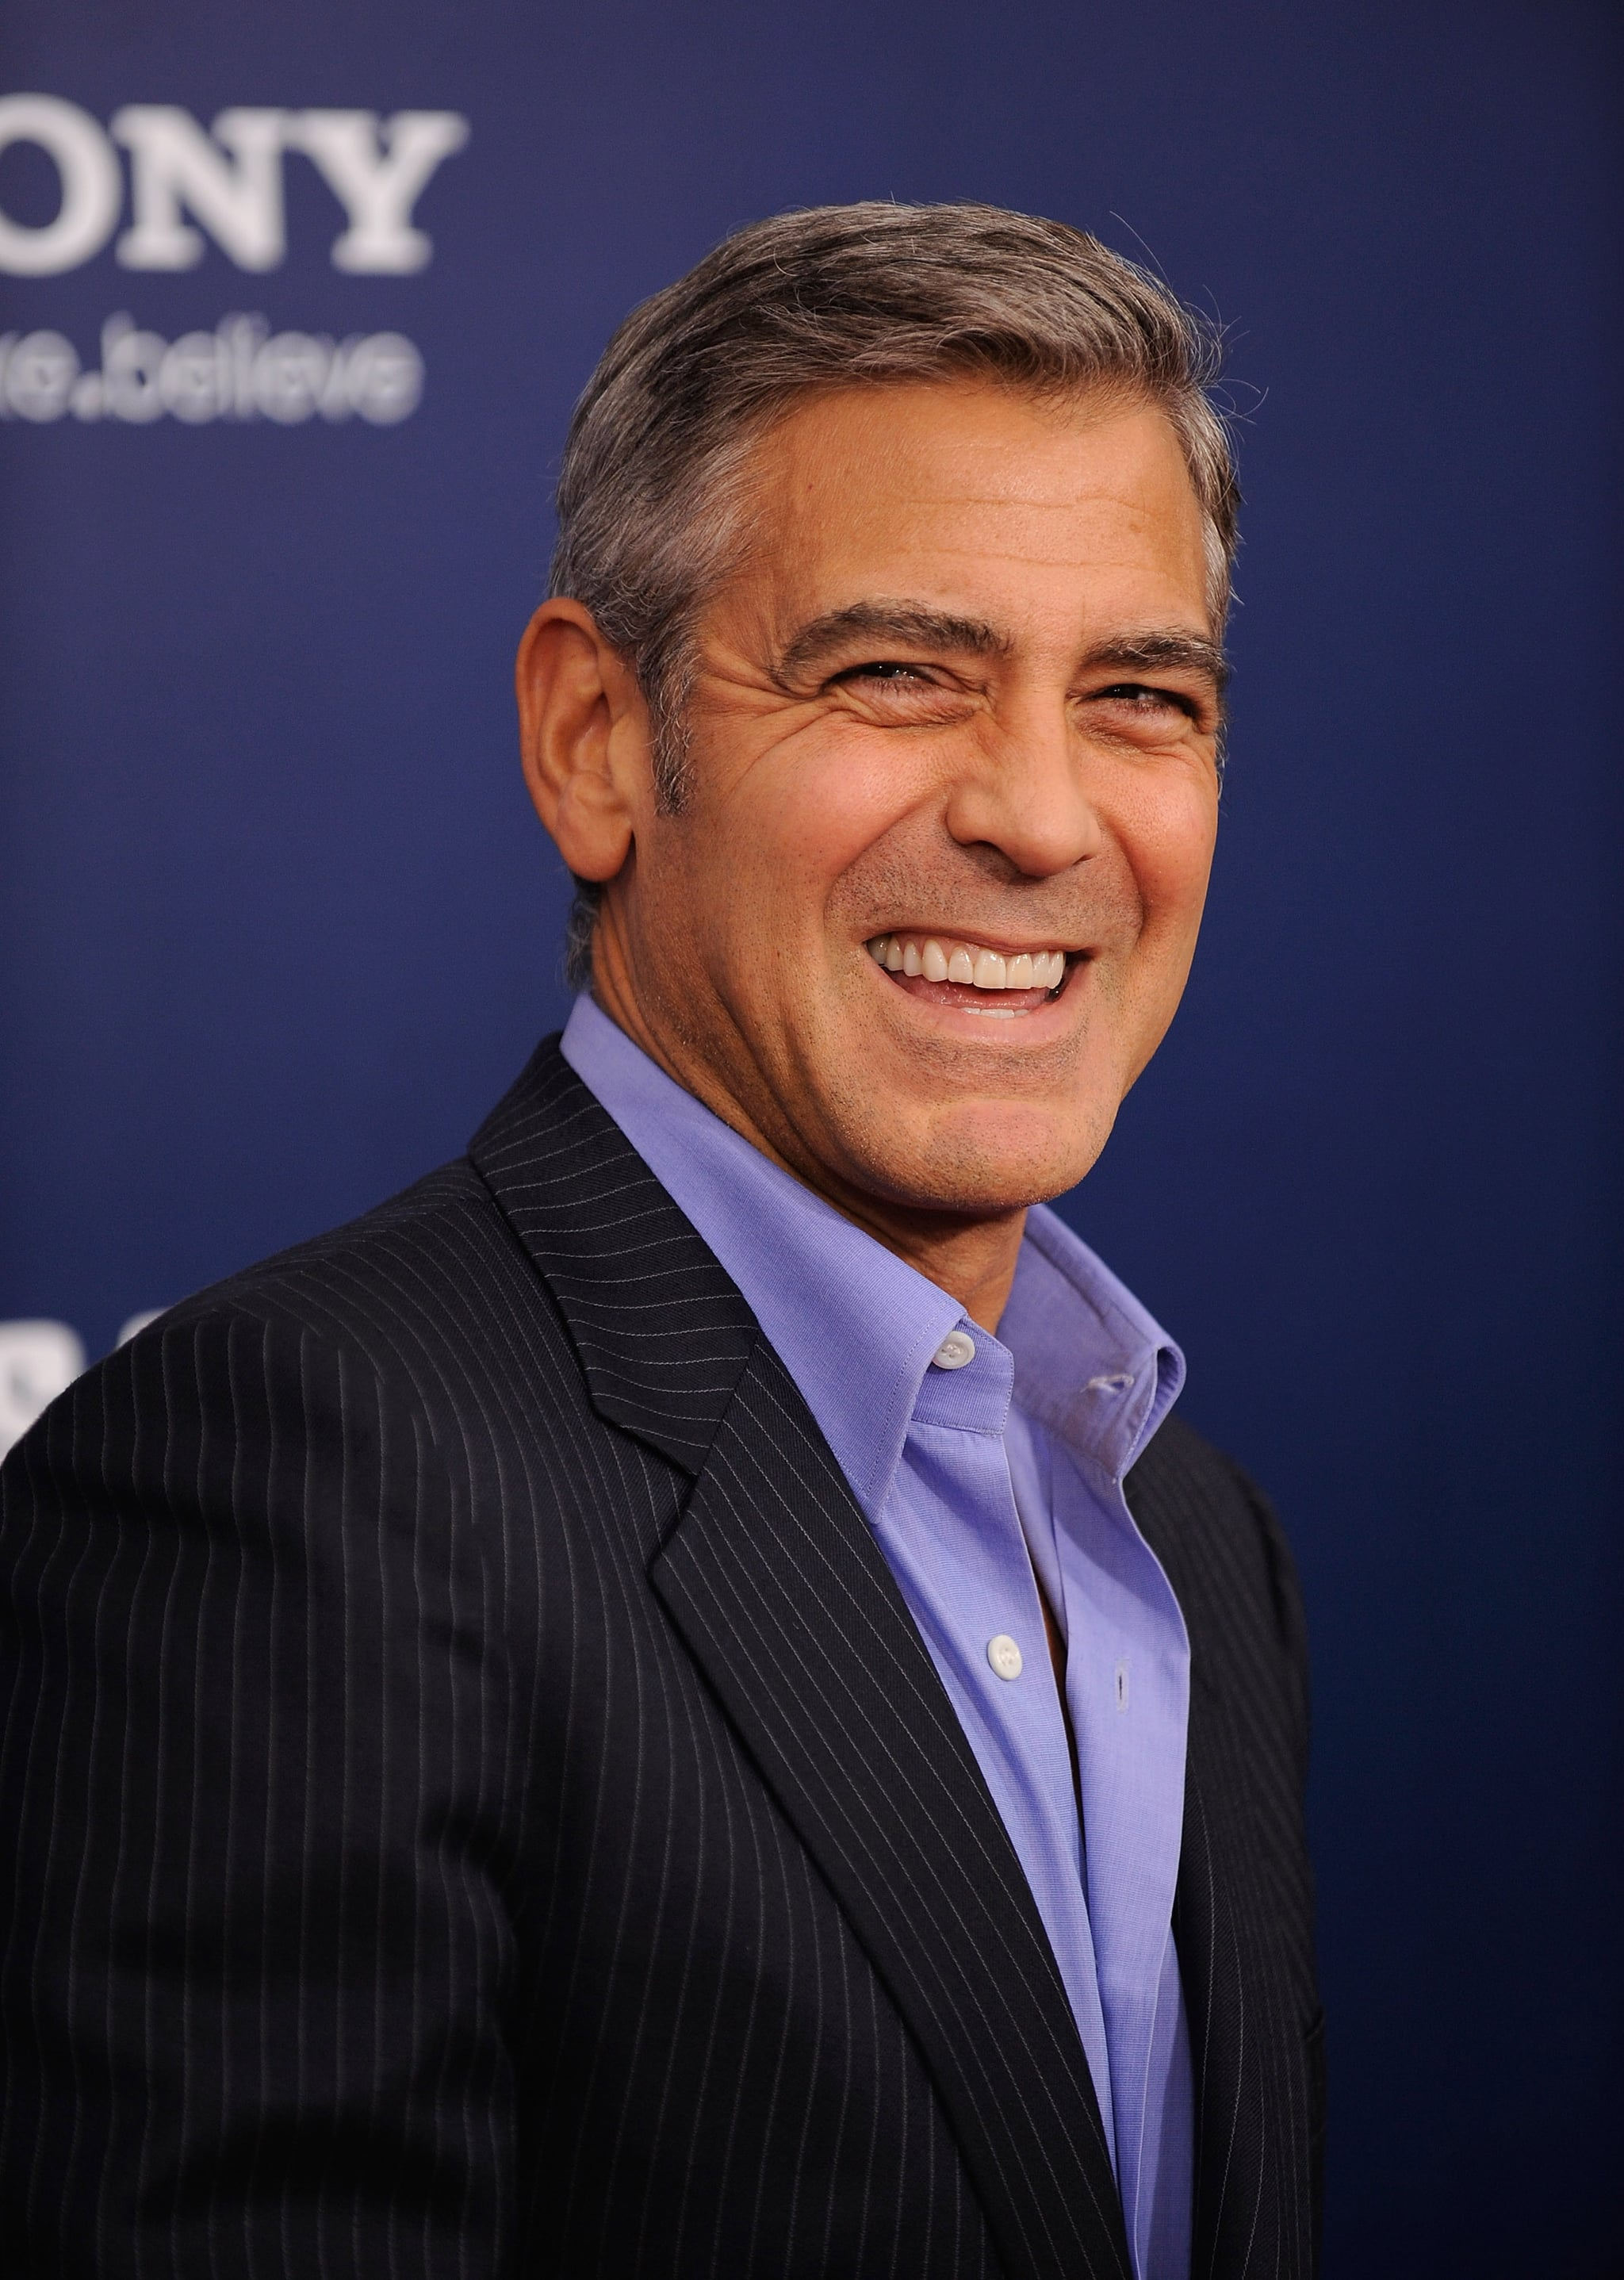 George Clooney couldn't help but smile at The Ides of March premiere in NYC.